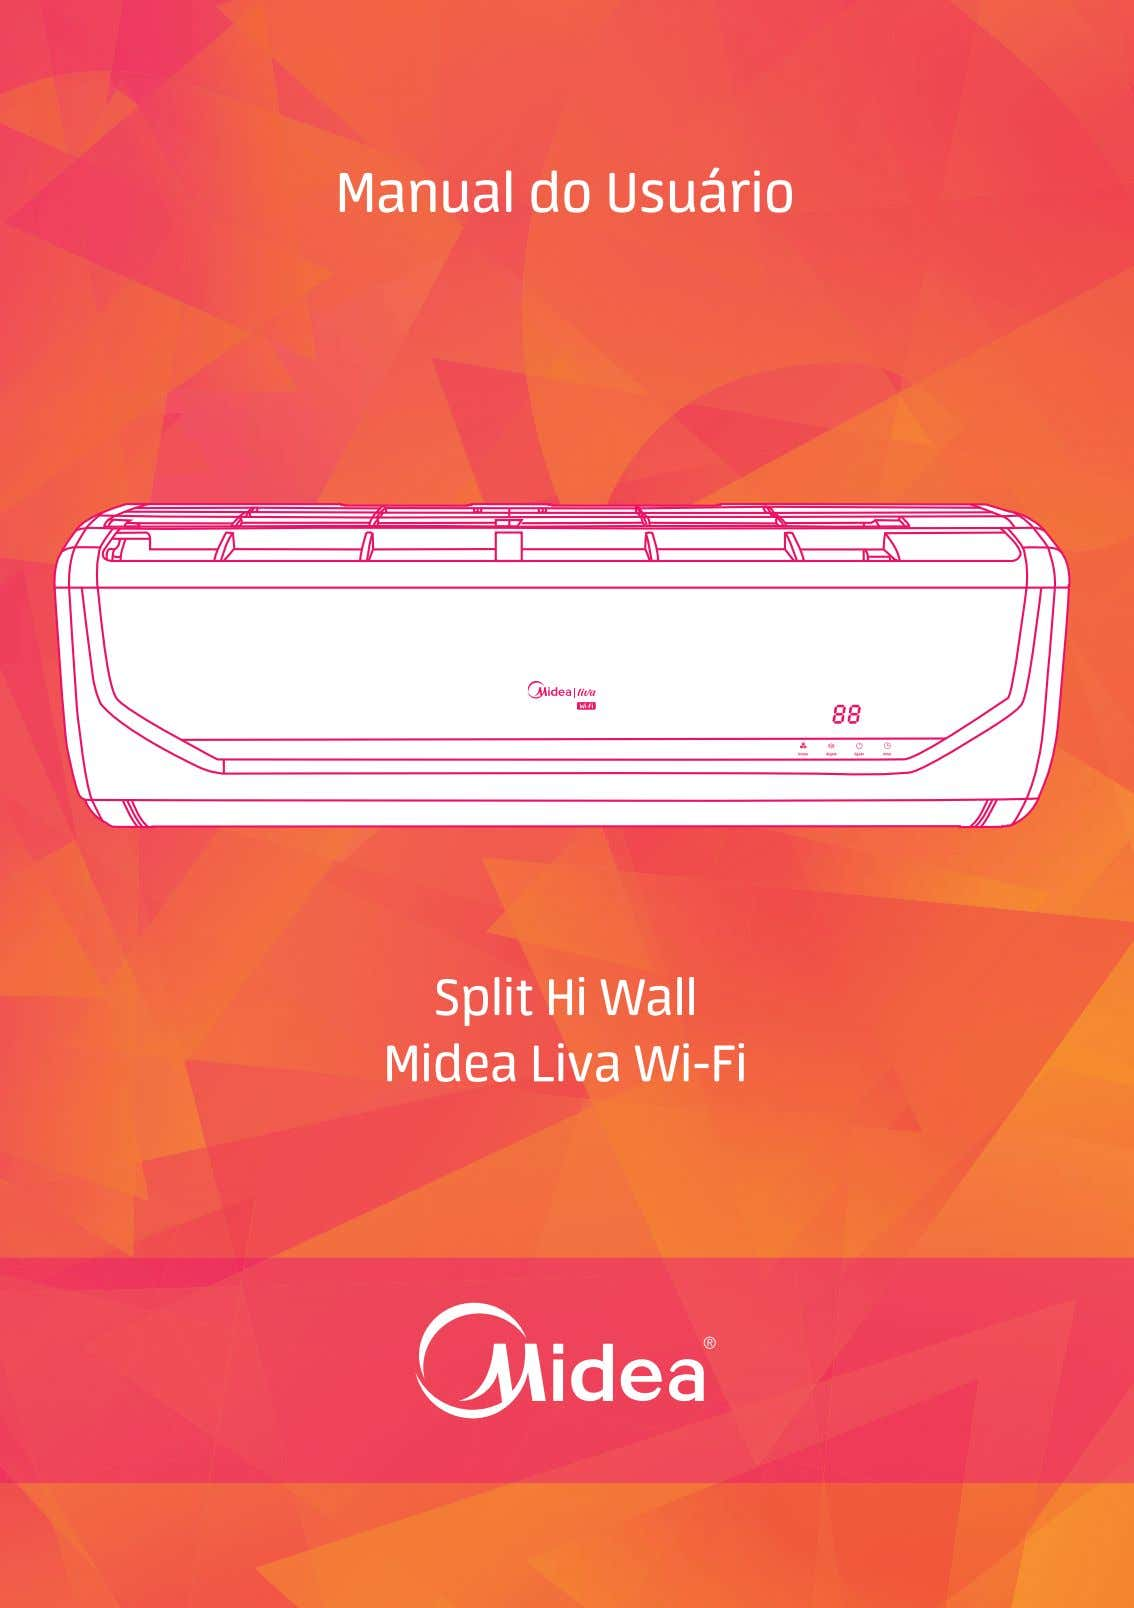 Manual do Usuário Split Hi Wall Midea Liva Wi-Fi